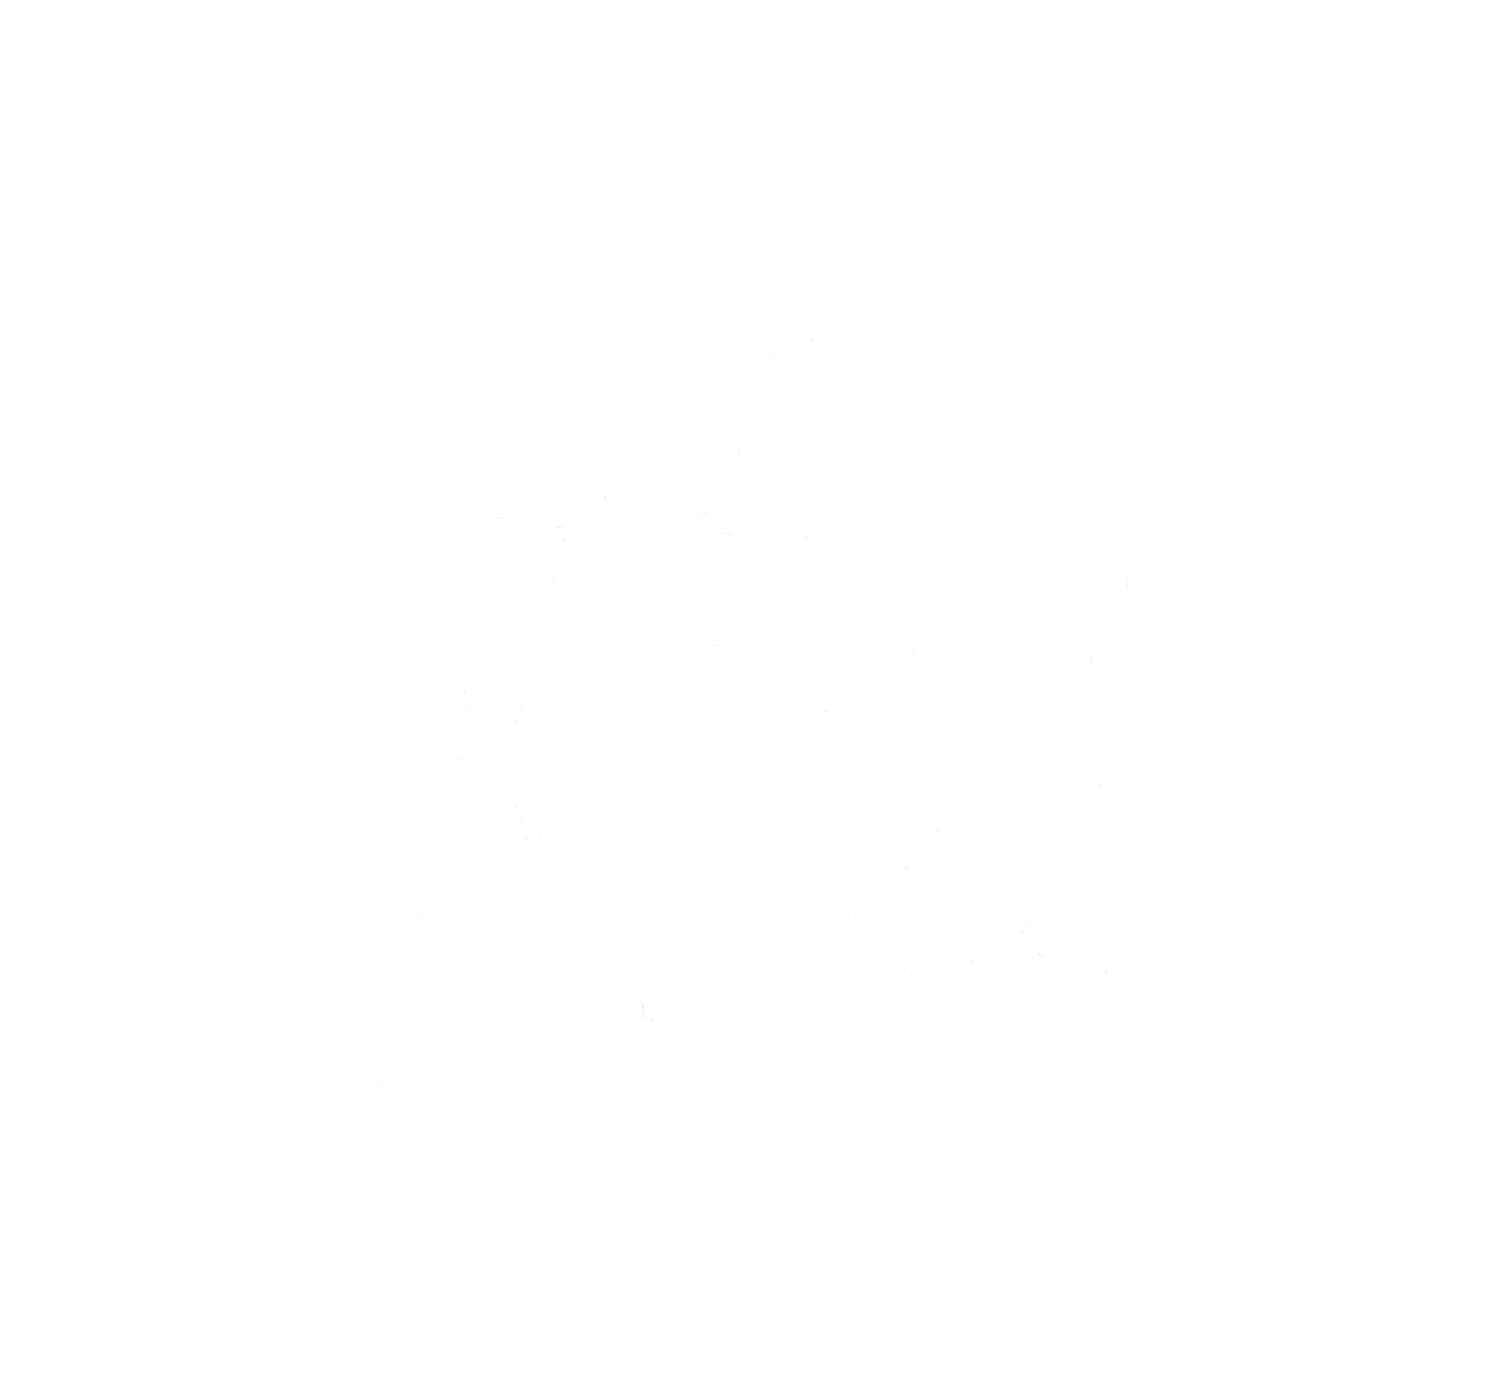 London Festival of Football Writing